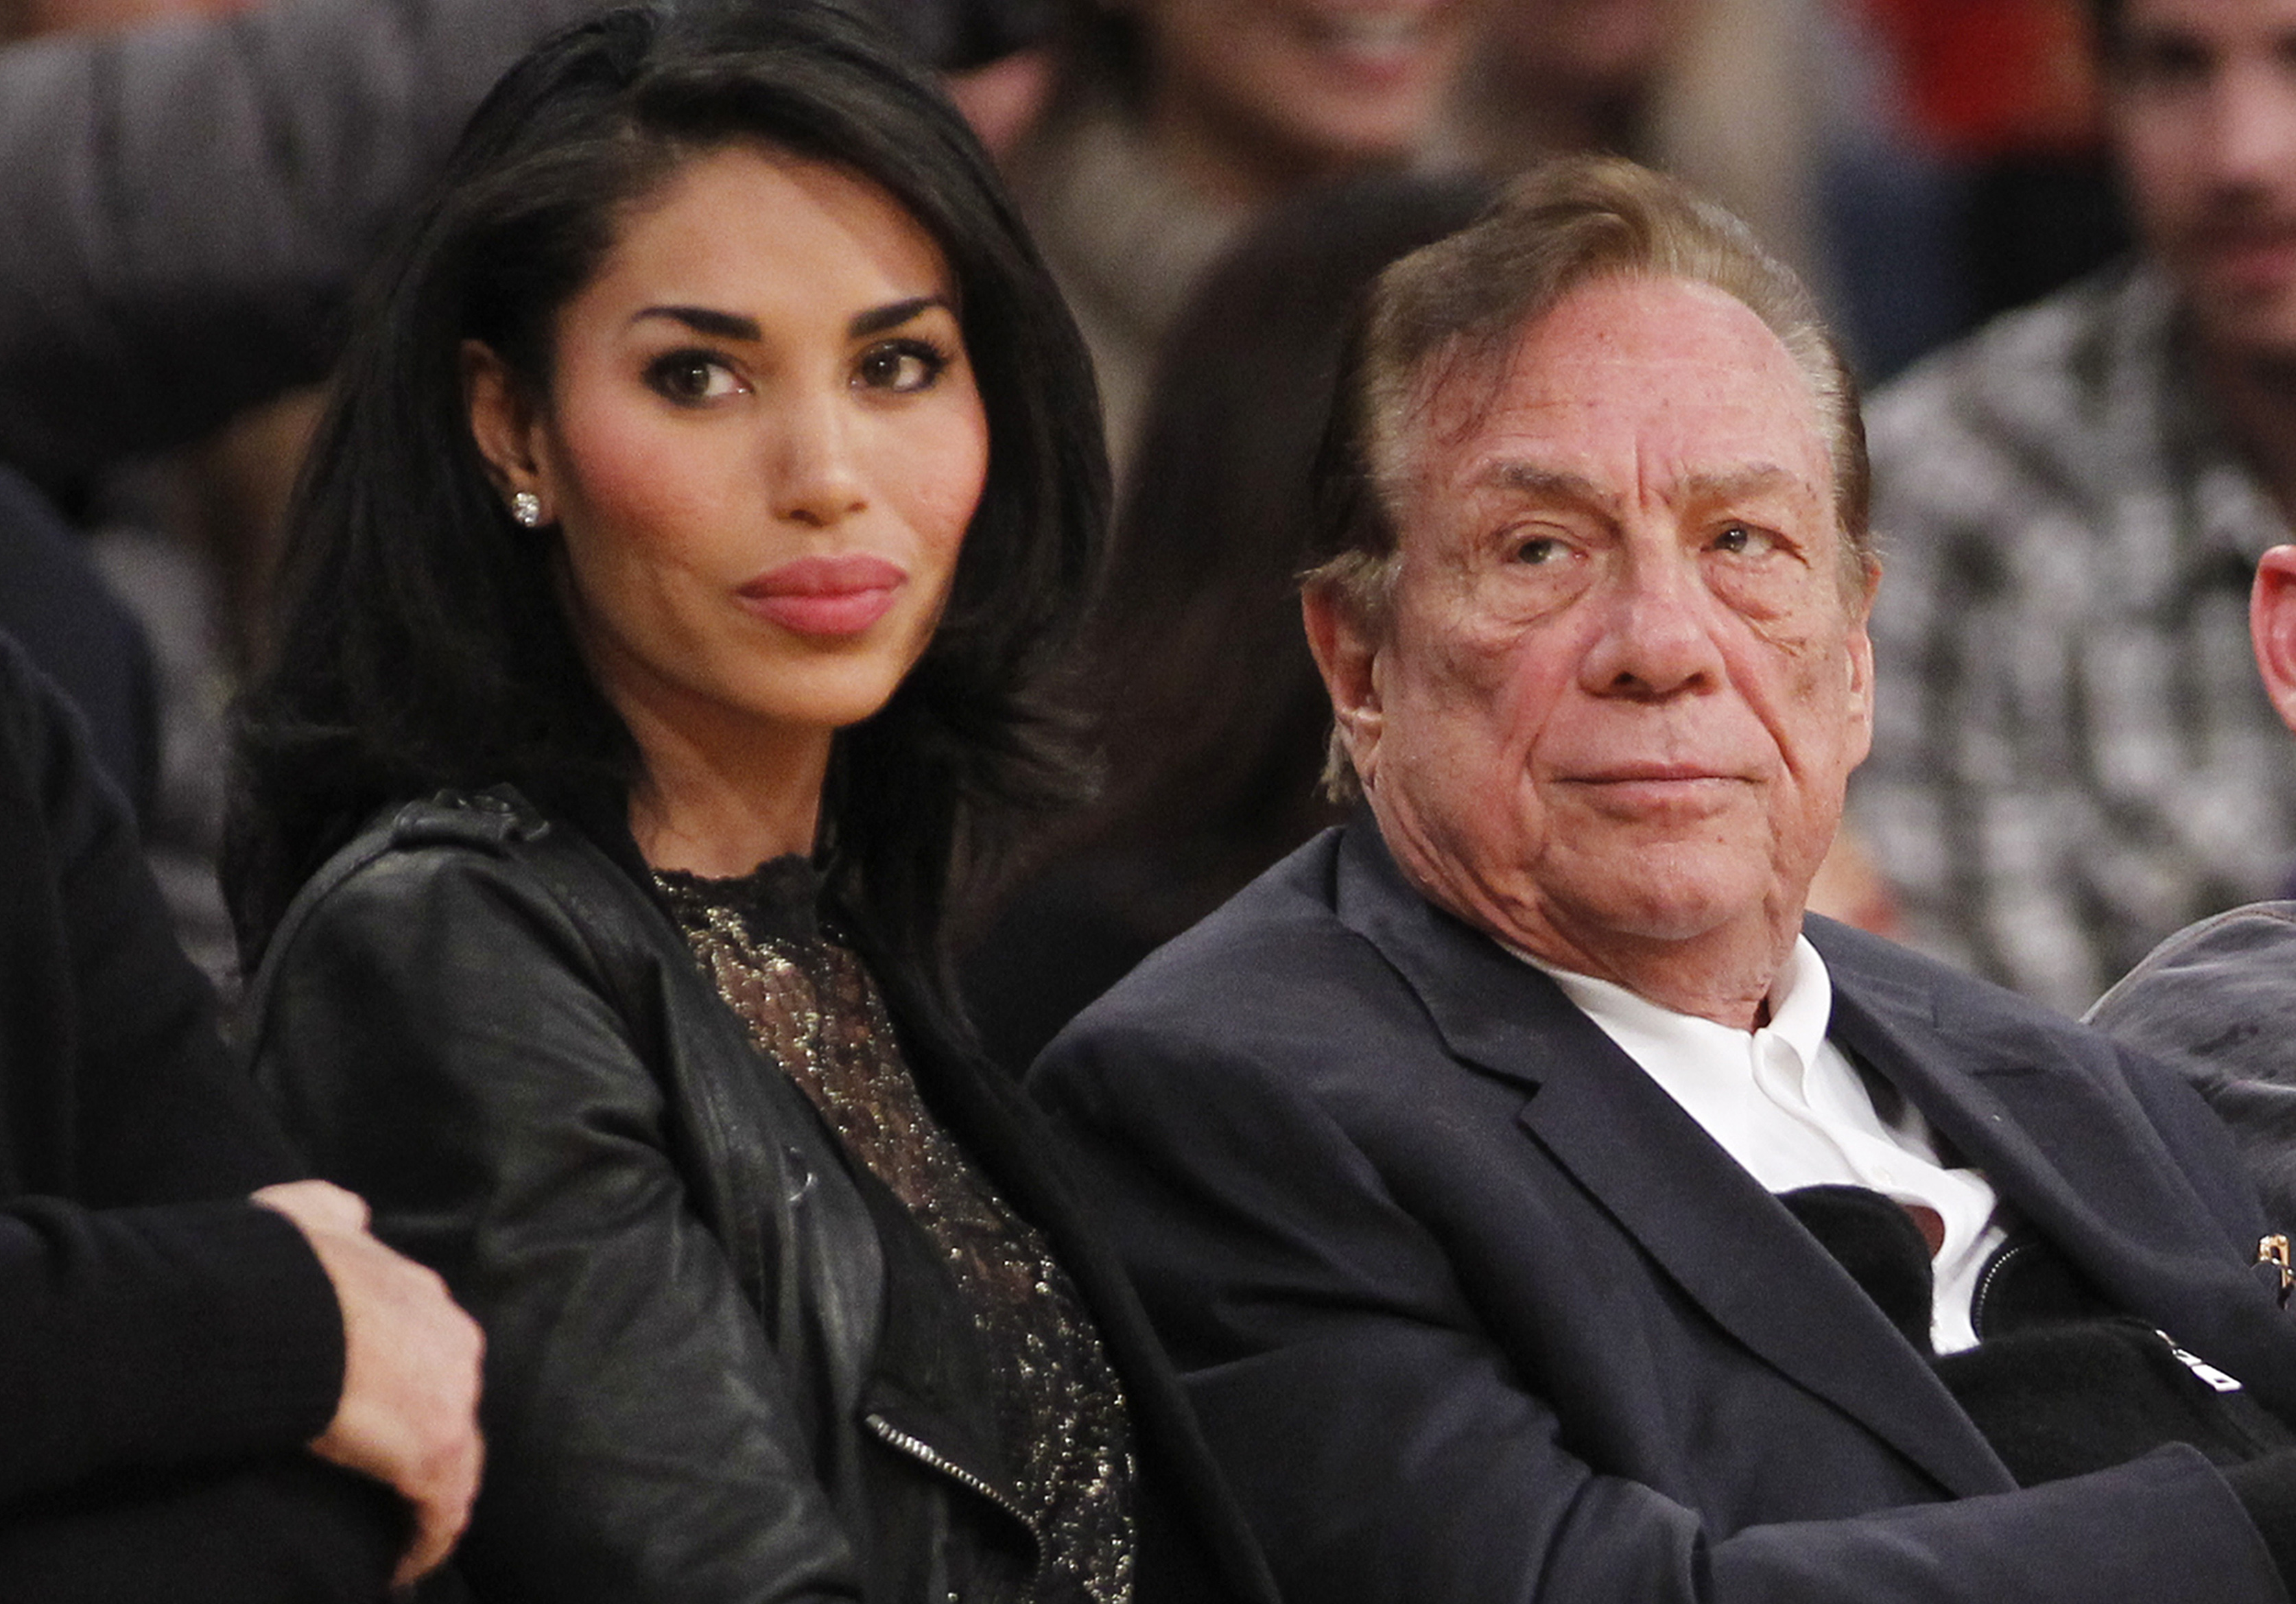 Los Angeles Clippers owner Donald Sterling, right, and V. Stiviano, left, watch the Clippers play the Los Angeles Lakers during an NBA preseason basketball game in Los Angeles on Monday, Dec. 19, 2011.